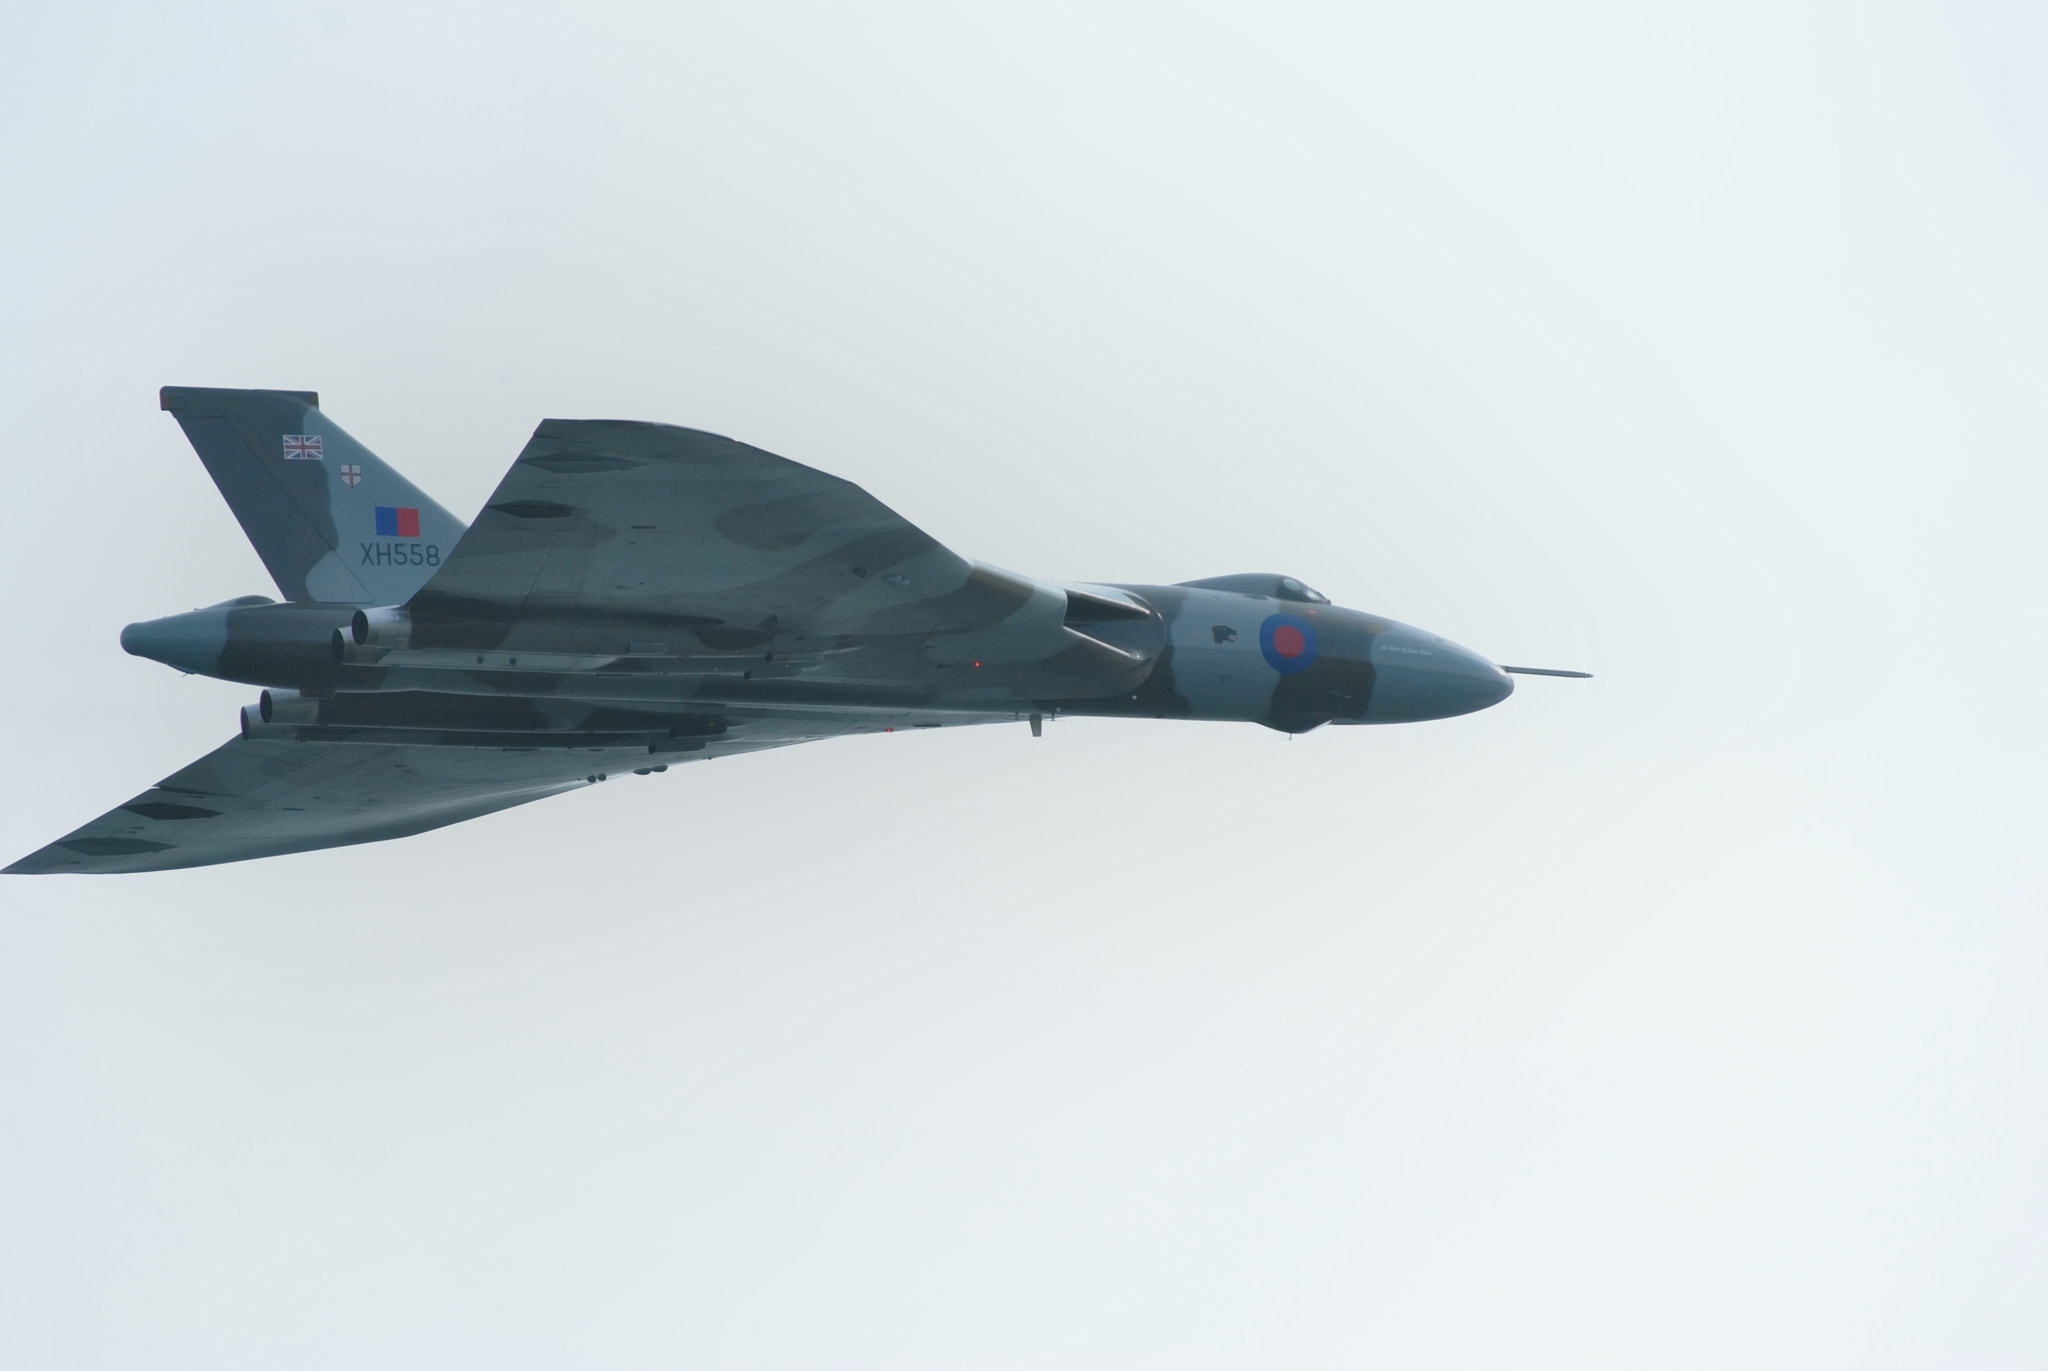 Photograph Vulcan XH558 by Richard Willson on 500px